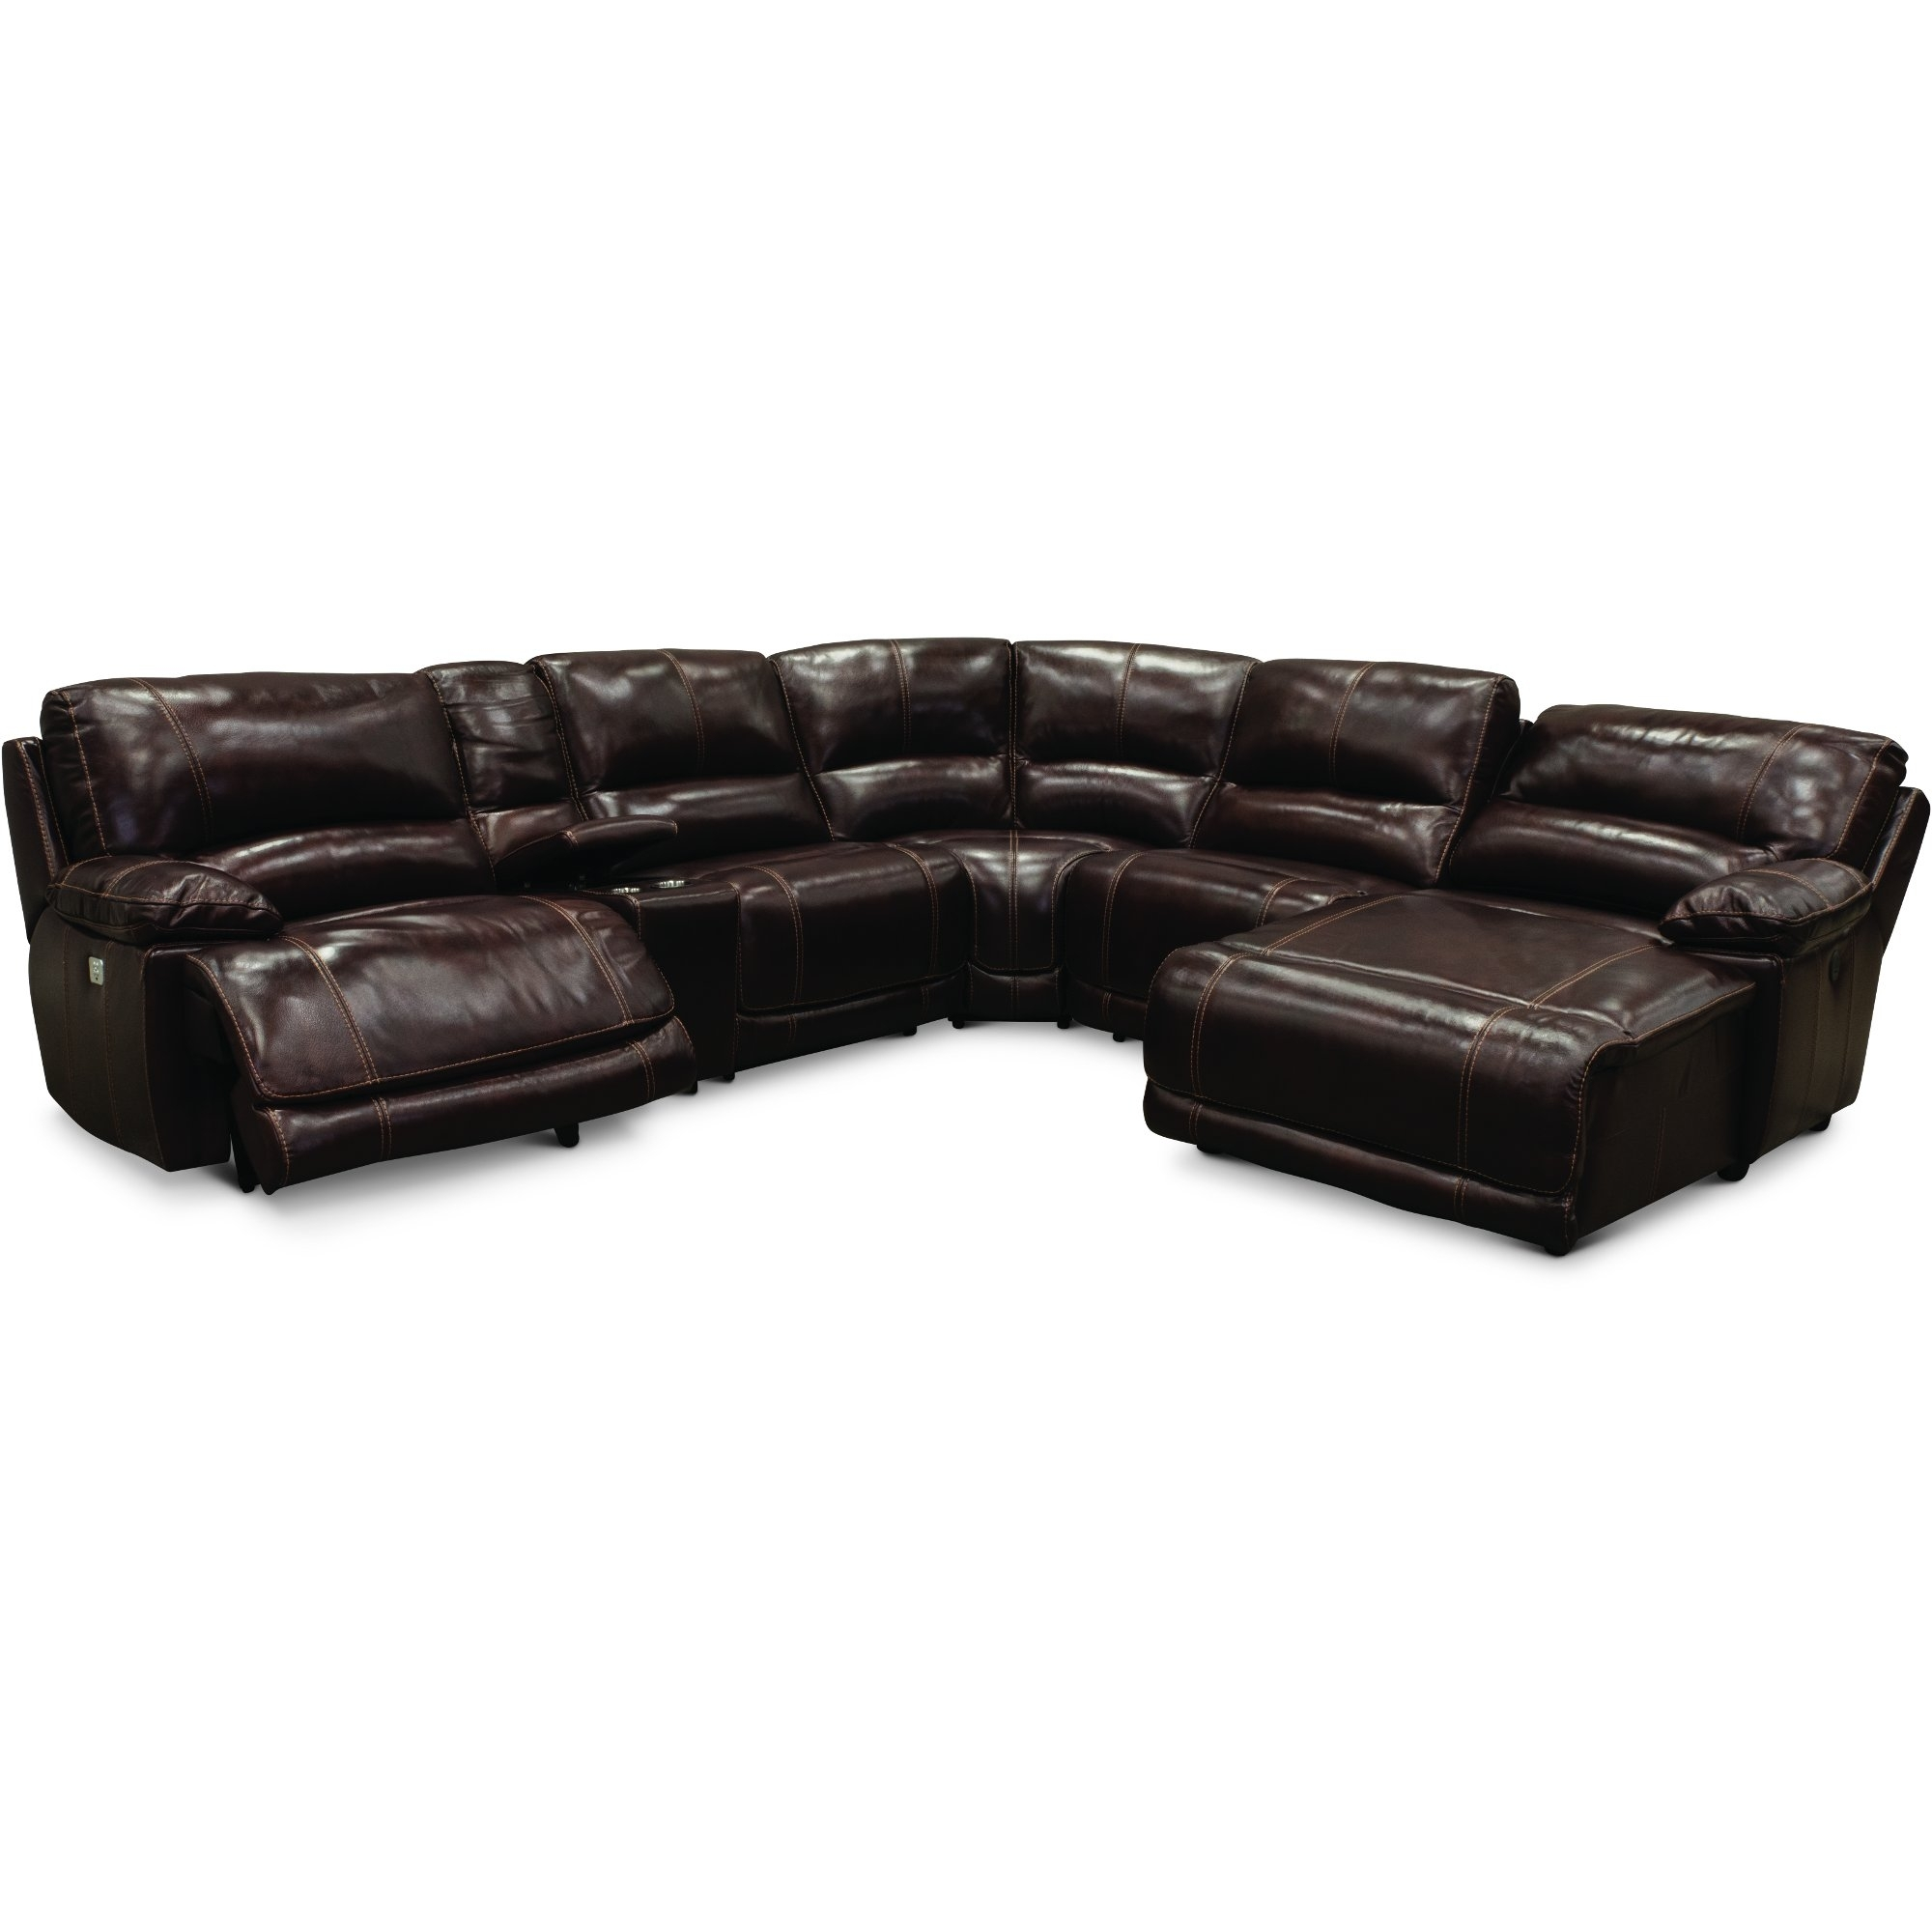 Burgundy 6 Piece Power Reclining Sectional Sofa – Brant | Rc Willey Intended For Jackson 6 Piece Power Reclining Sectionals With  Sleeper (Image 10 of 25)